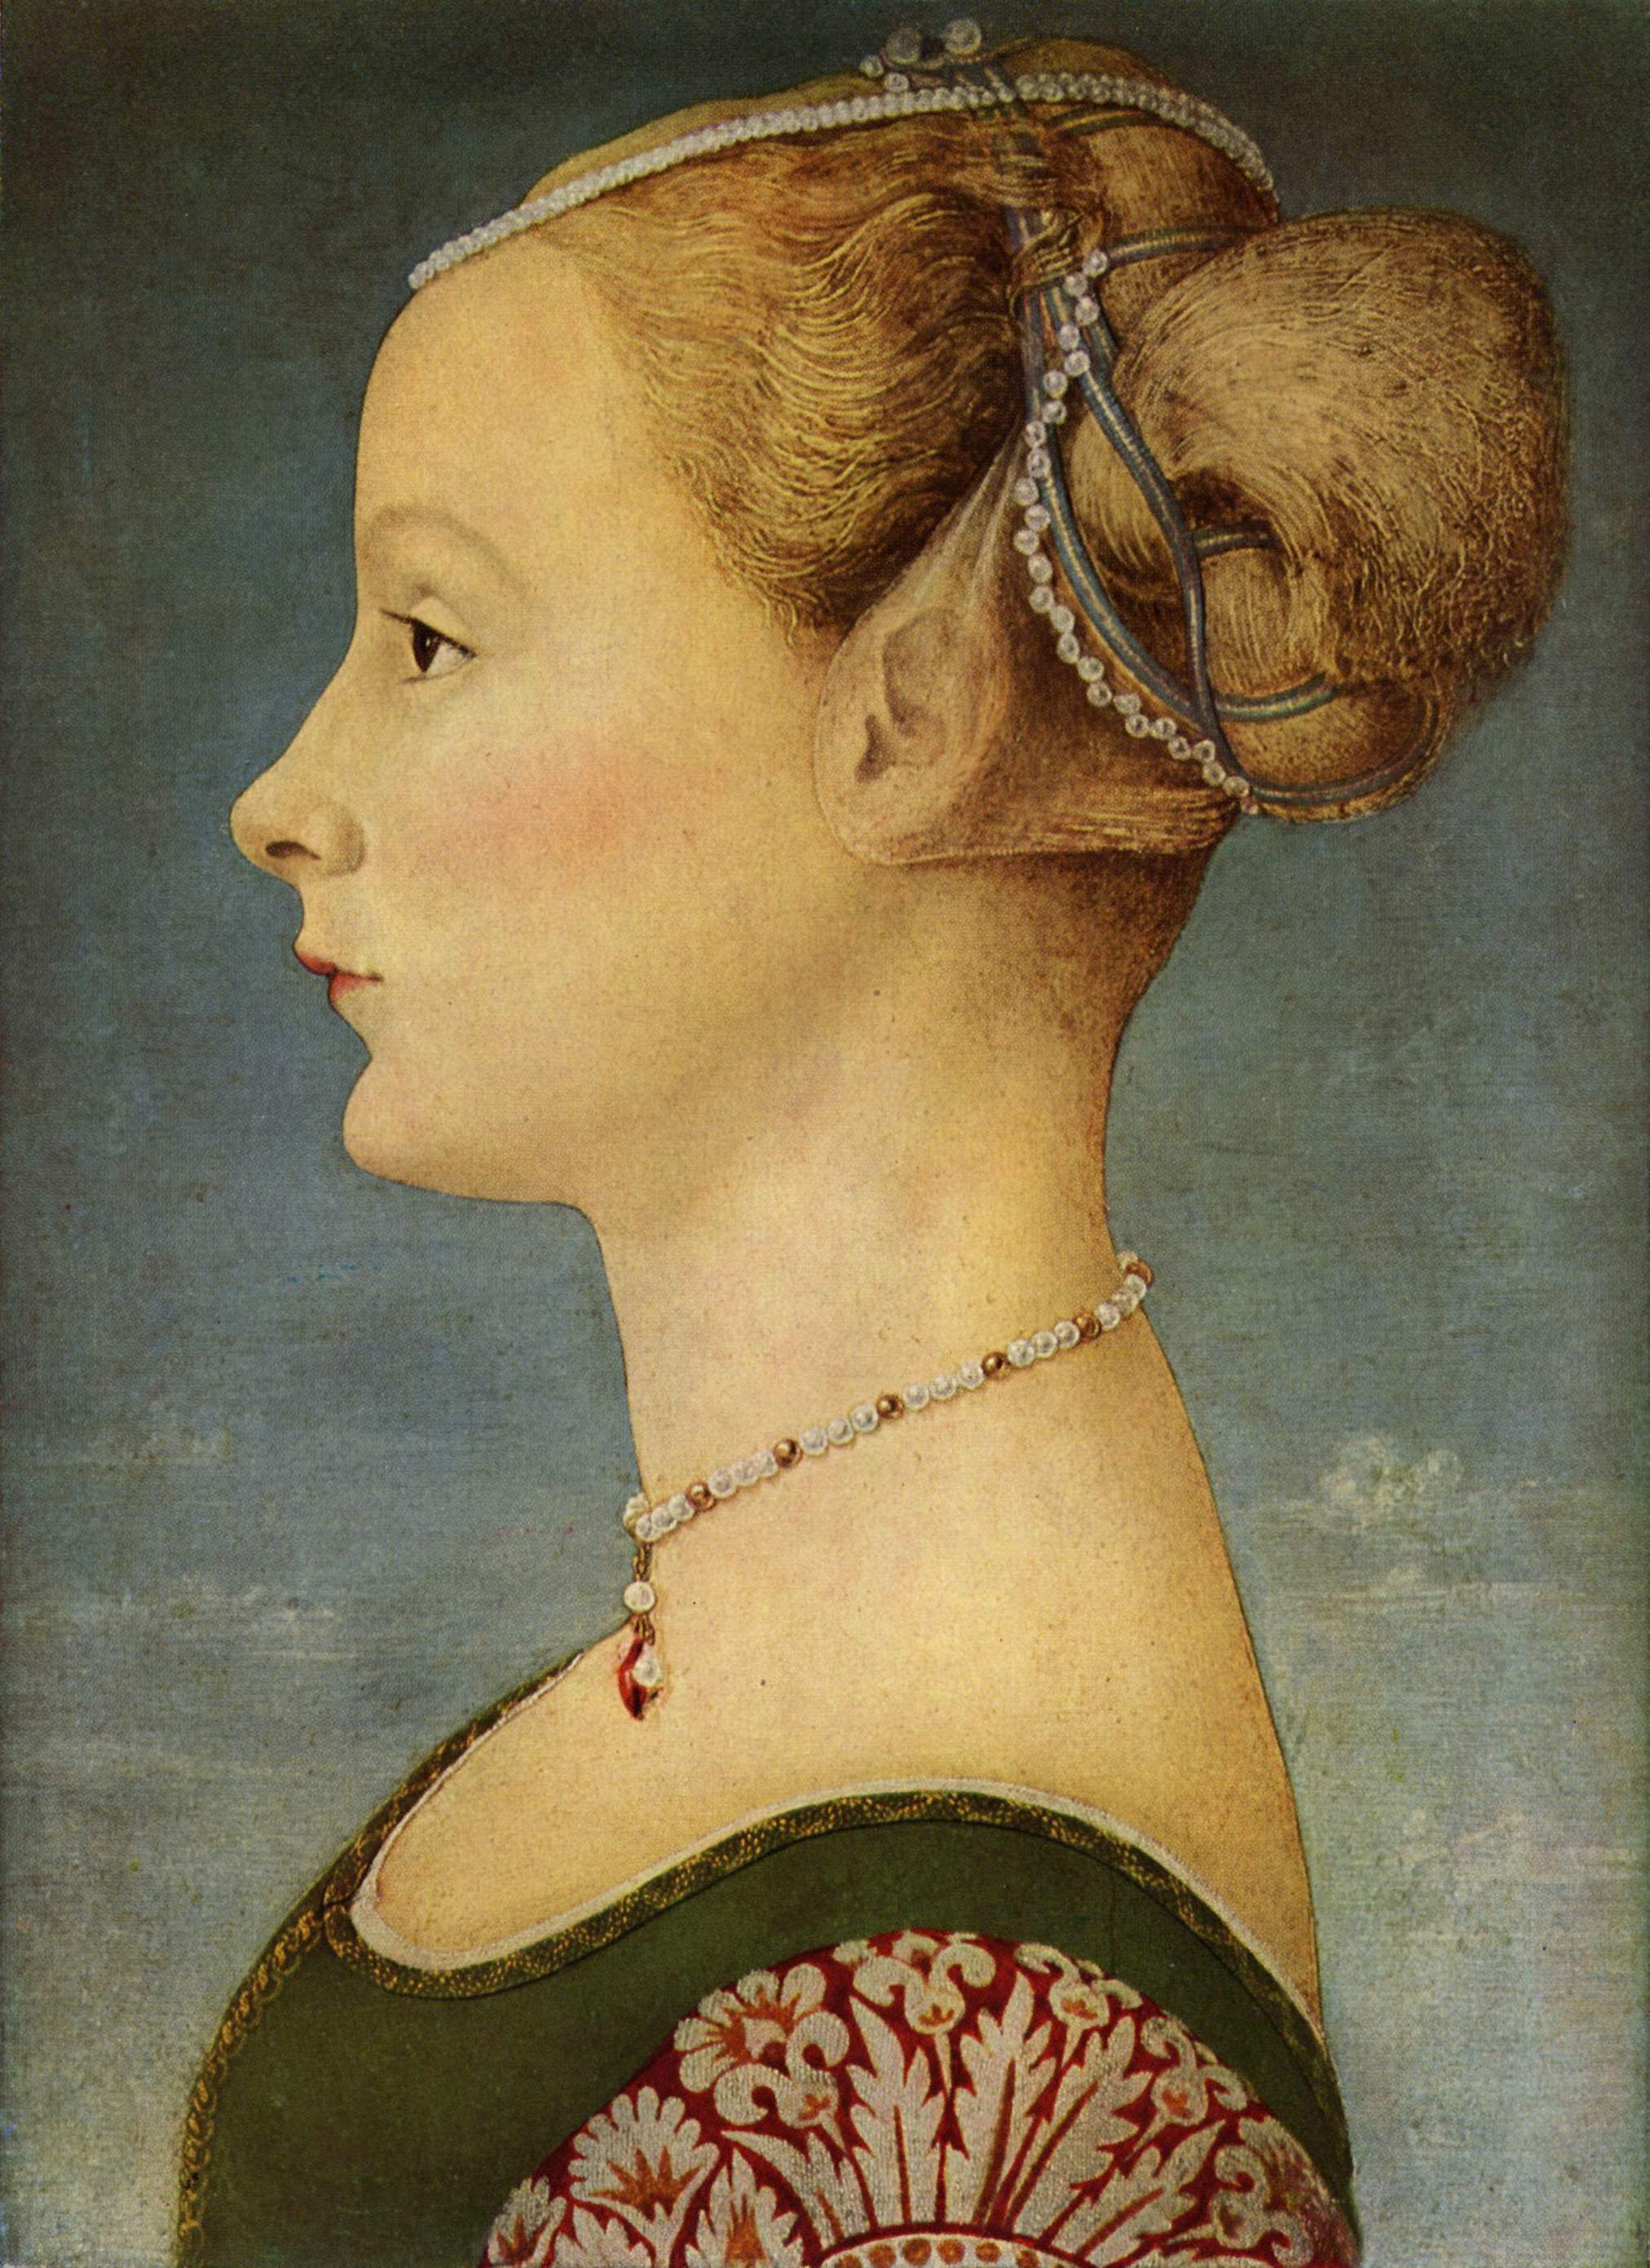 http://upload.wikimedia.org/wikipedia/commons/2/2c/Piero_Pollaiuolo_001.jpg